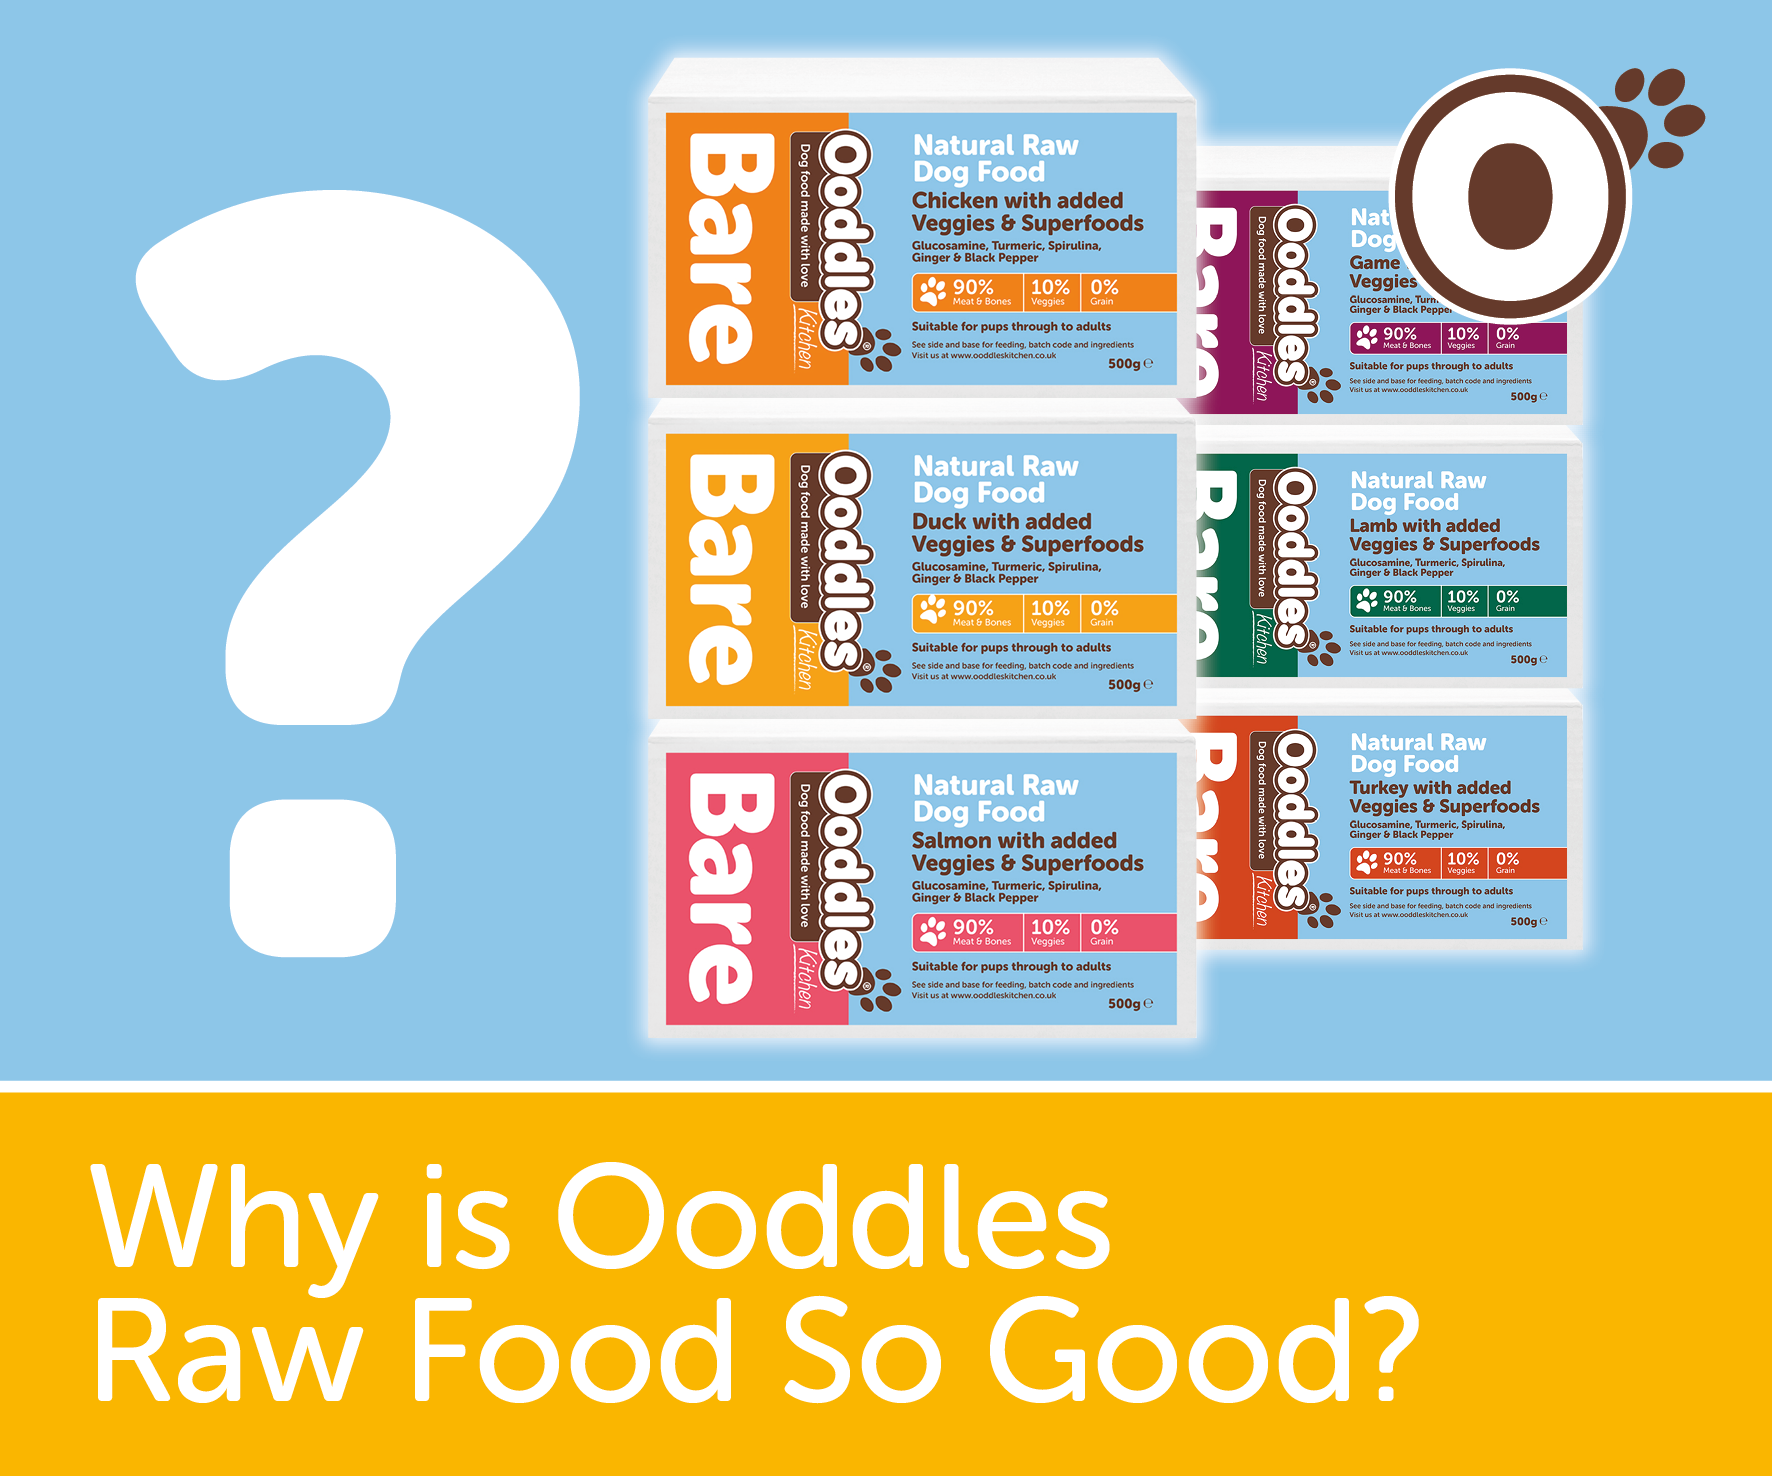 Why is Bare Ooddles Raw Is So Good.